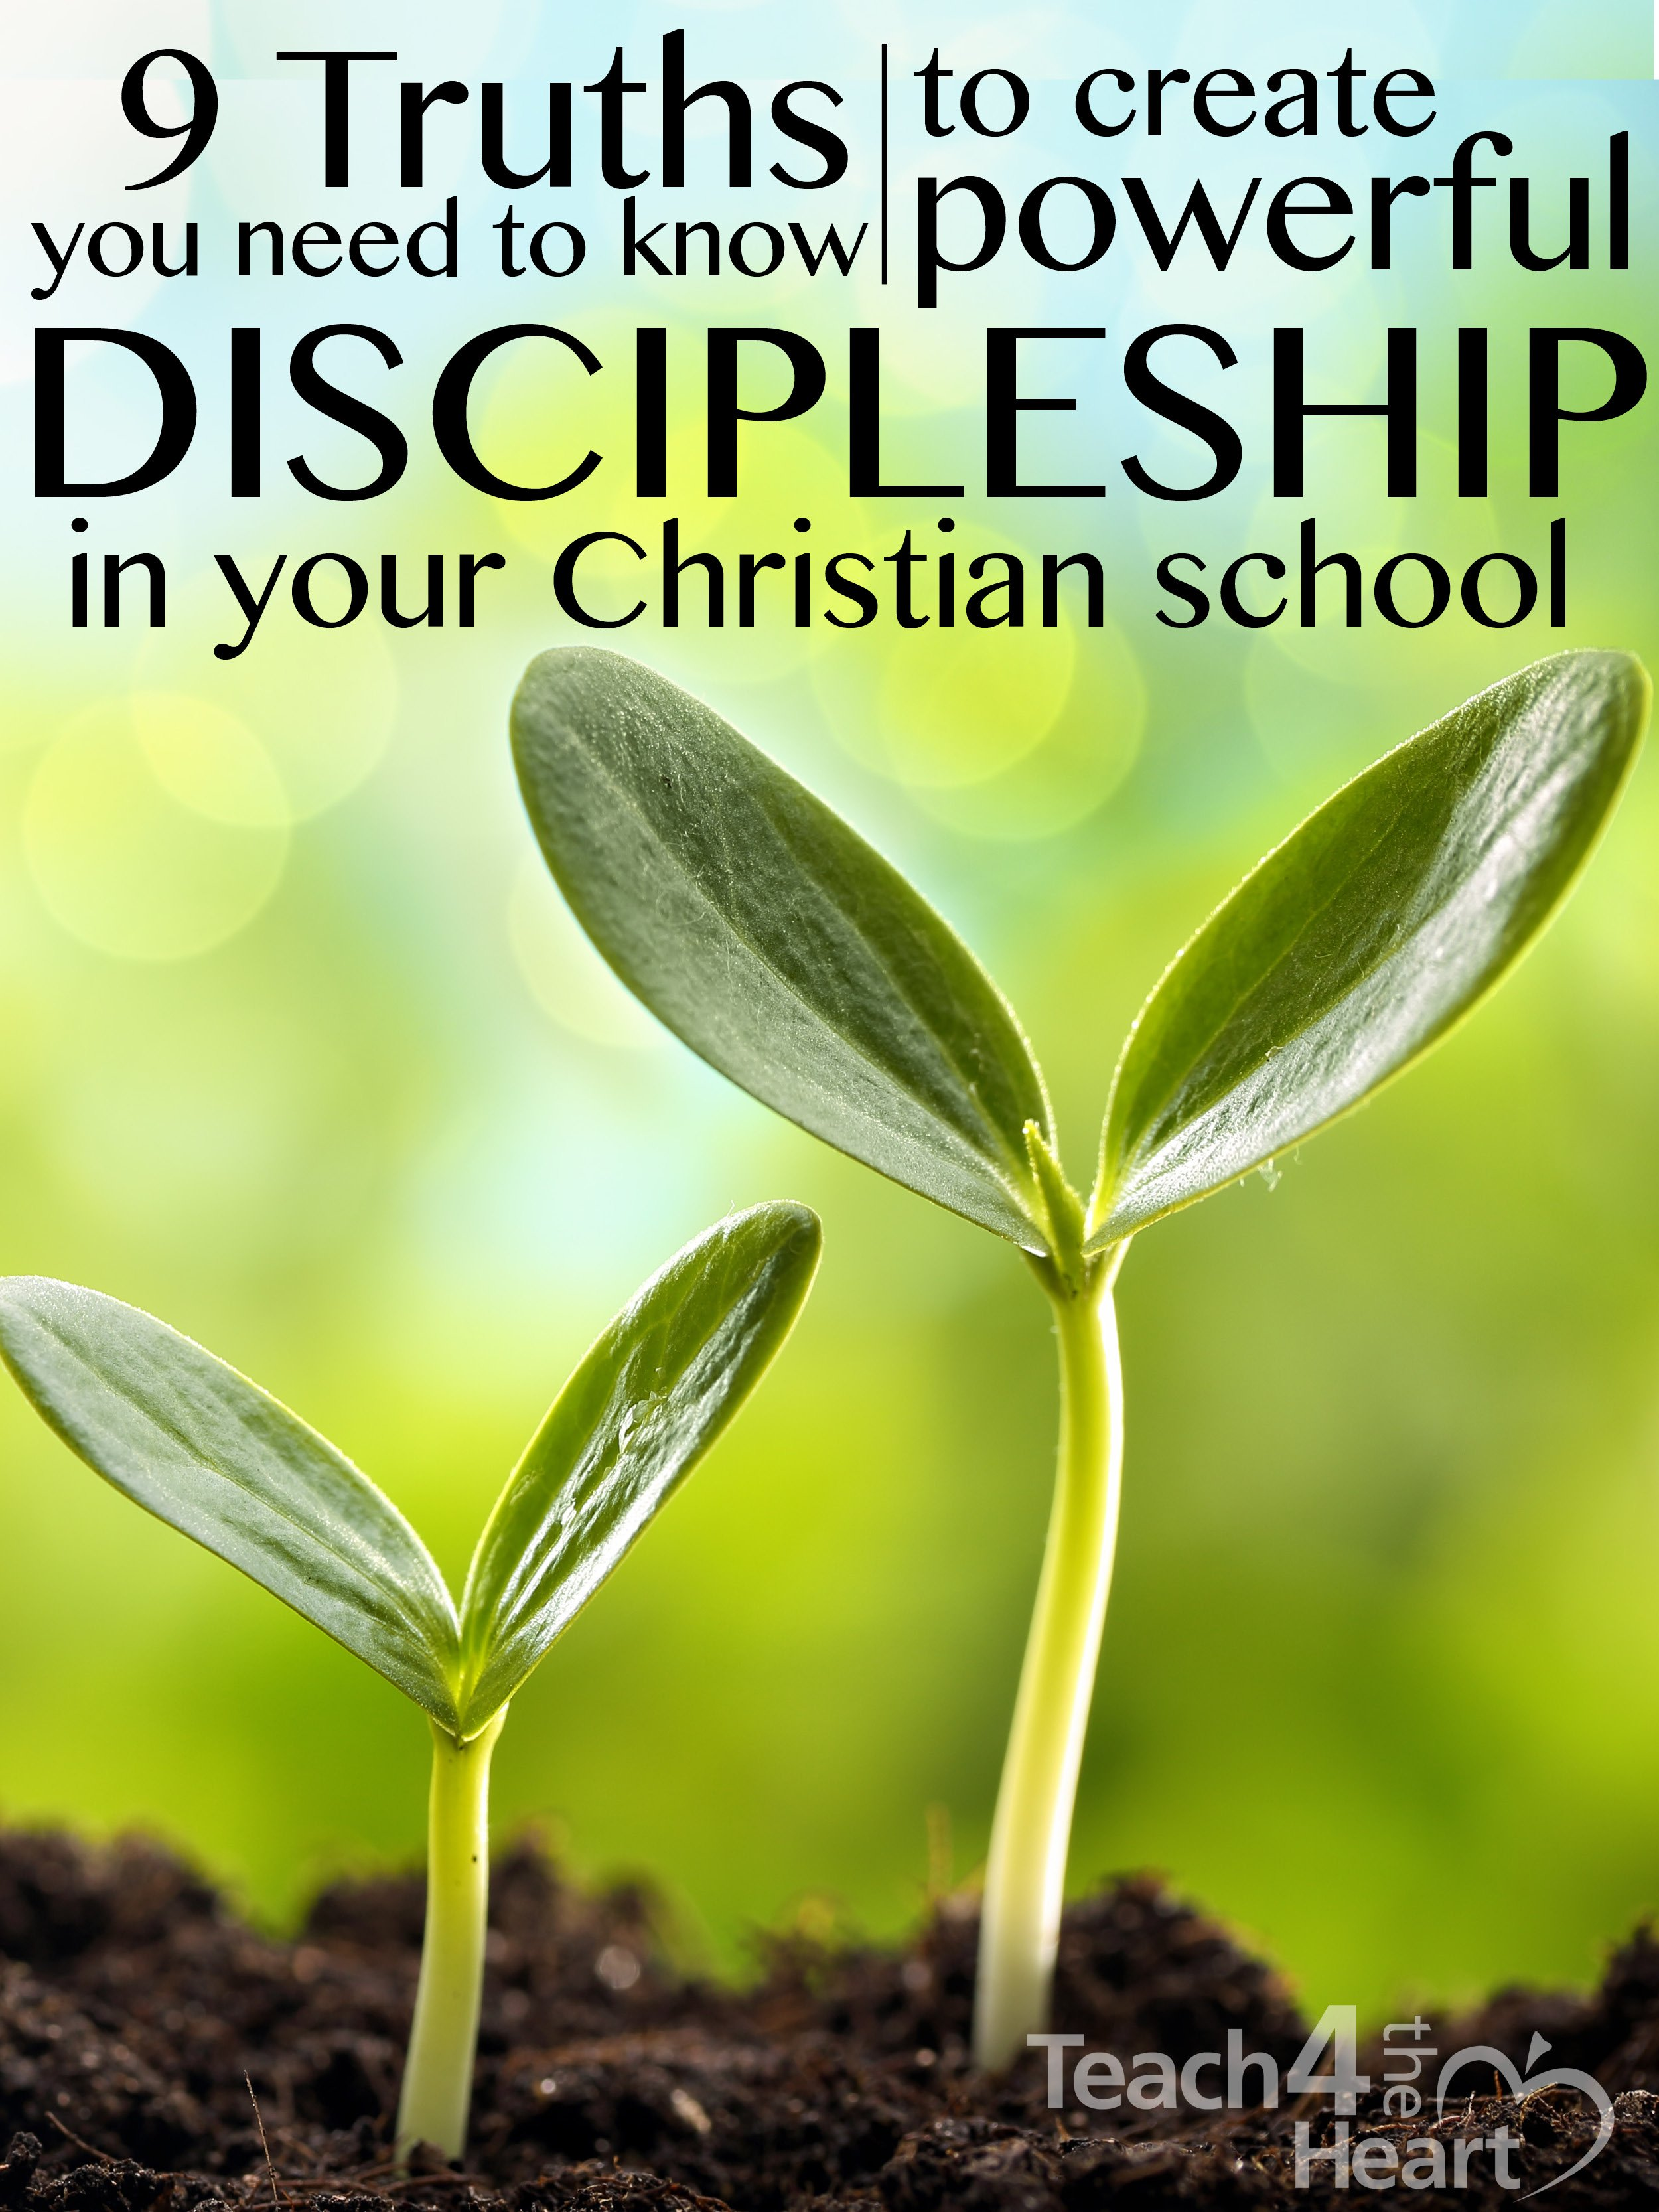 discipleship in christian school